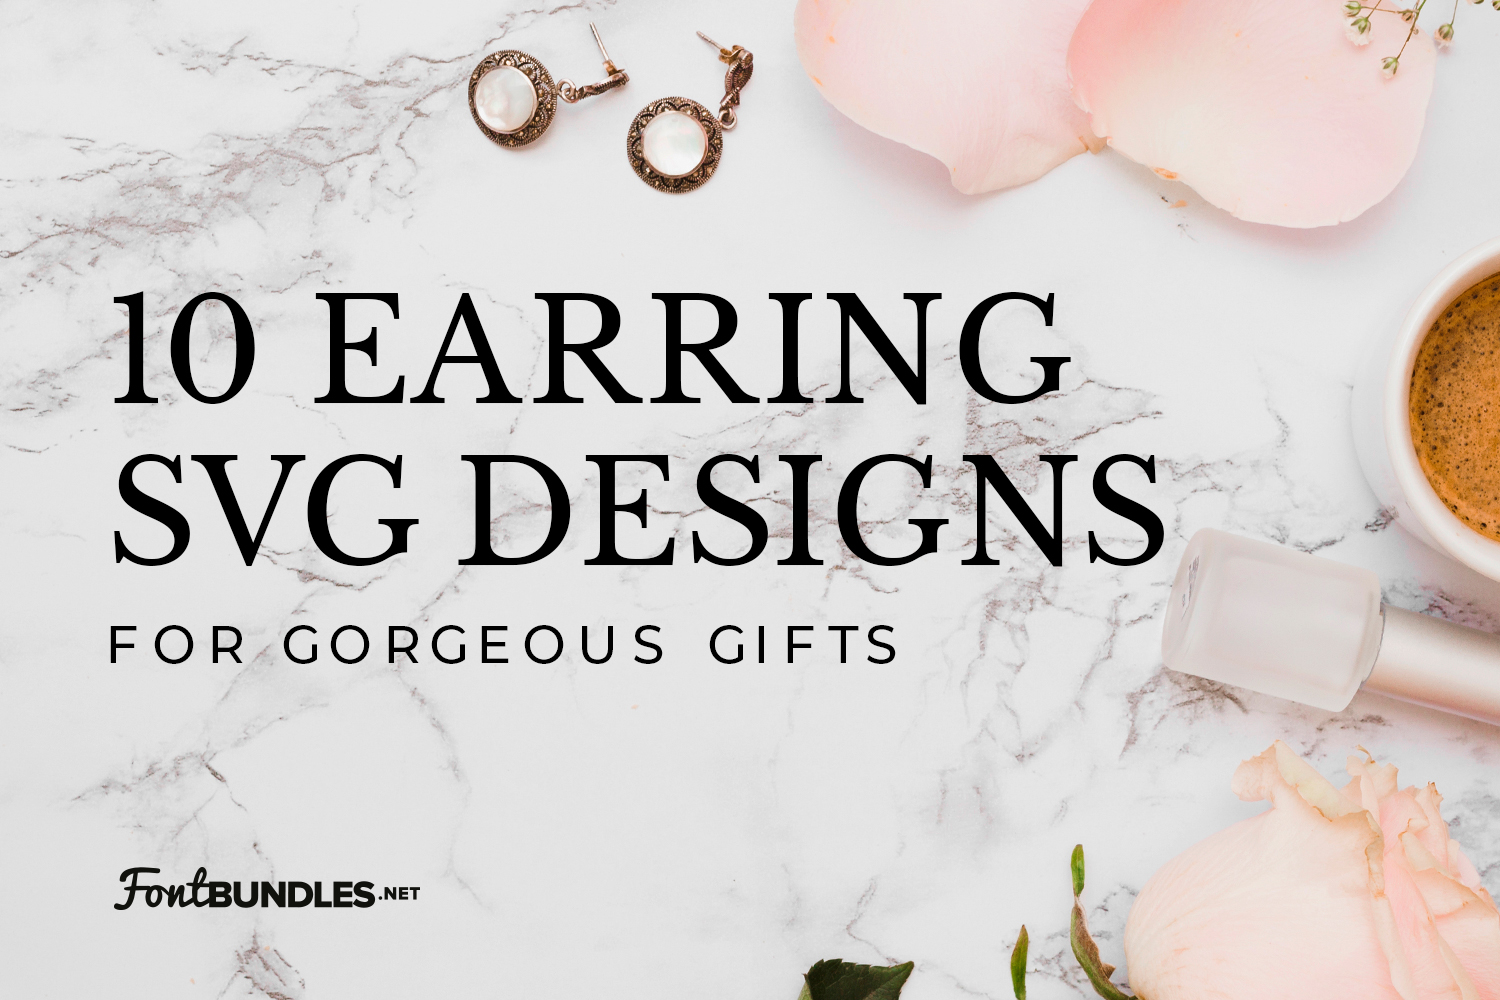 10 Earring SVG Designs for Gorgeous Gifts Preview